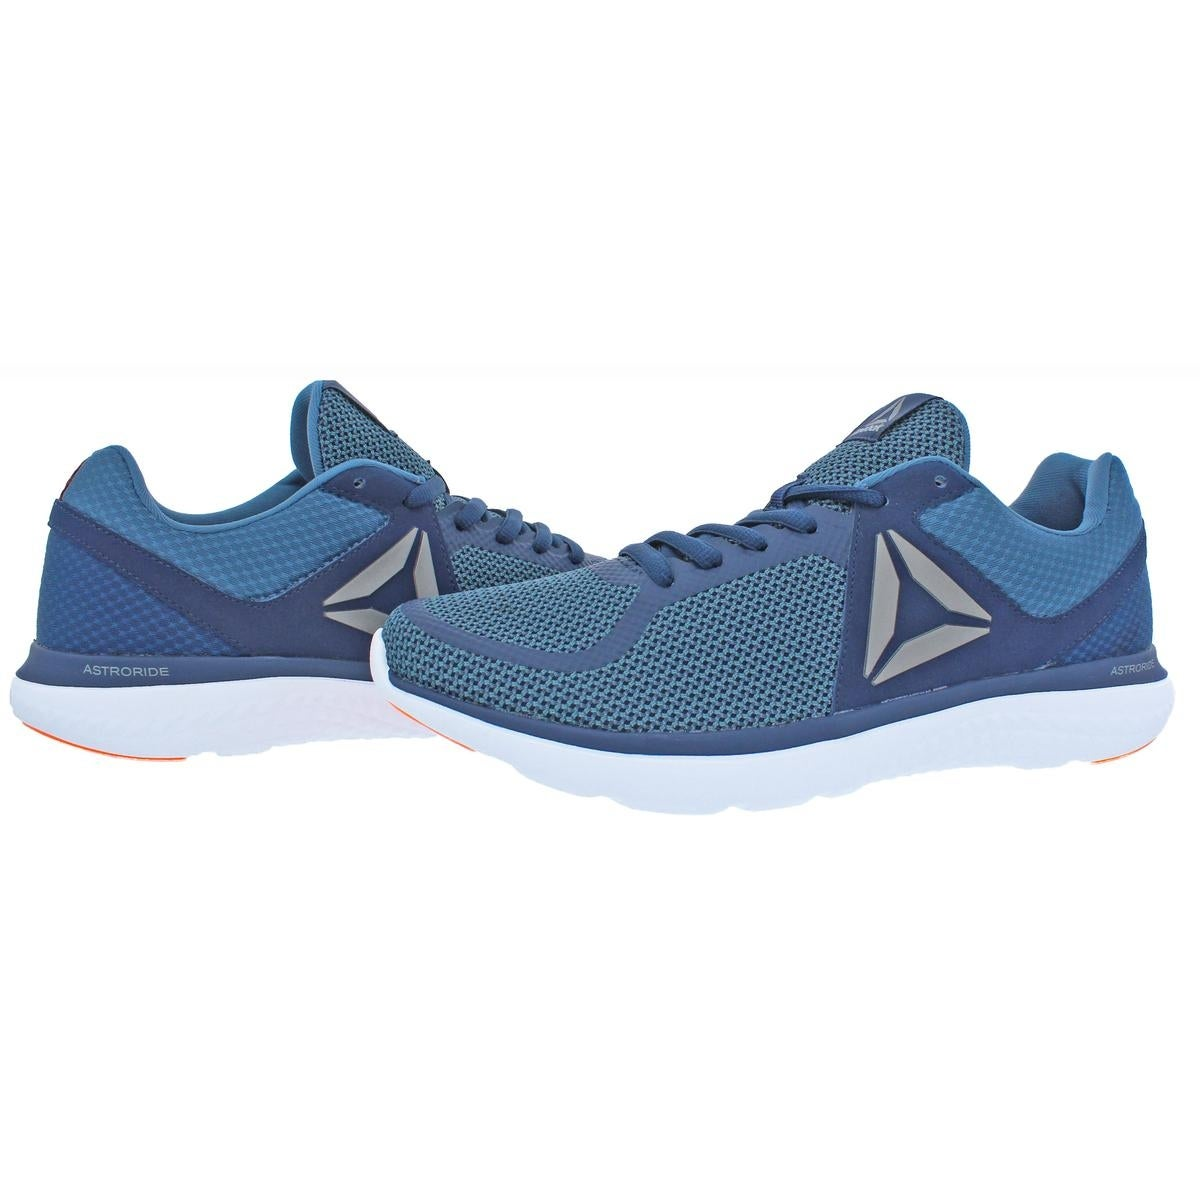 3f1a426a6b2 Shop Reebok Mens Astroride Run MT Running Shoes MemoryTech Lightweight -  Ships To Canada - Overstock.ca - 22680367